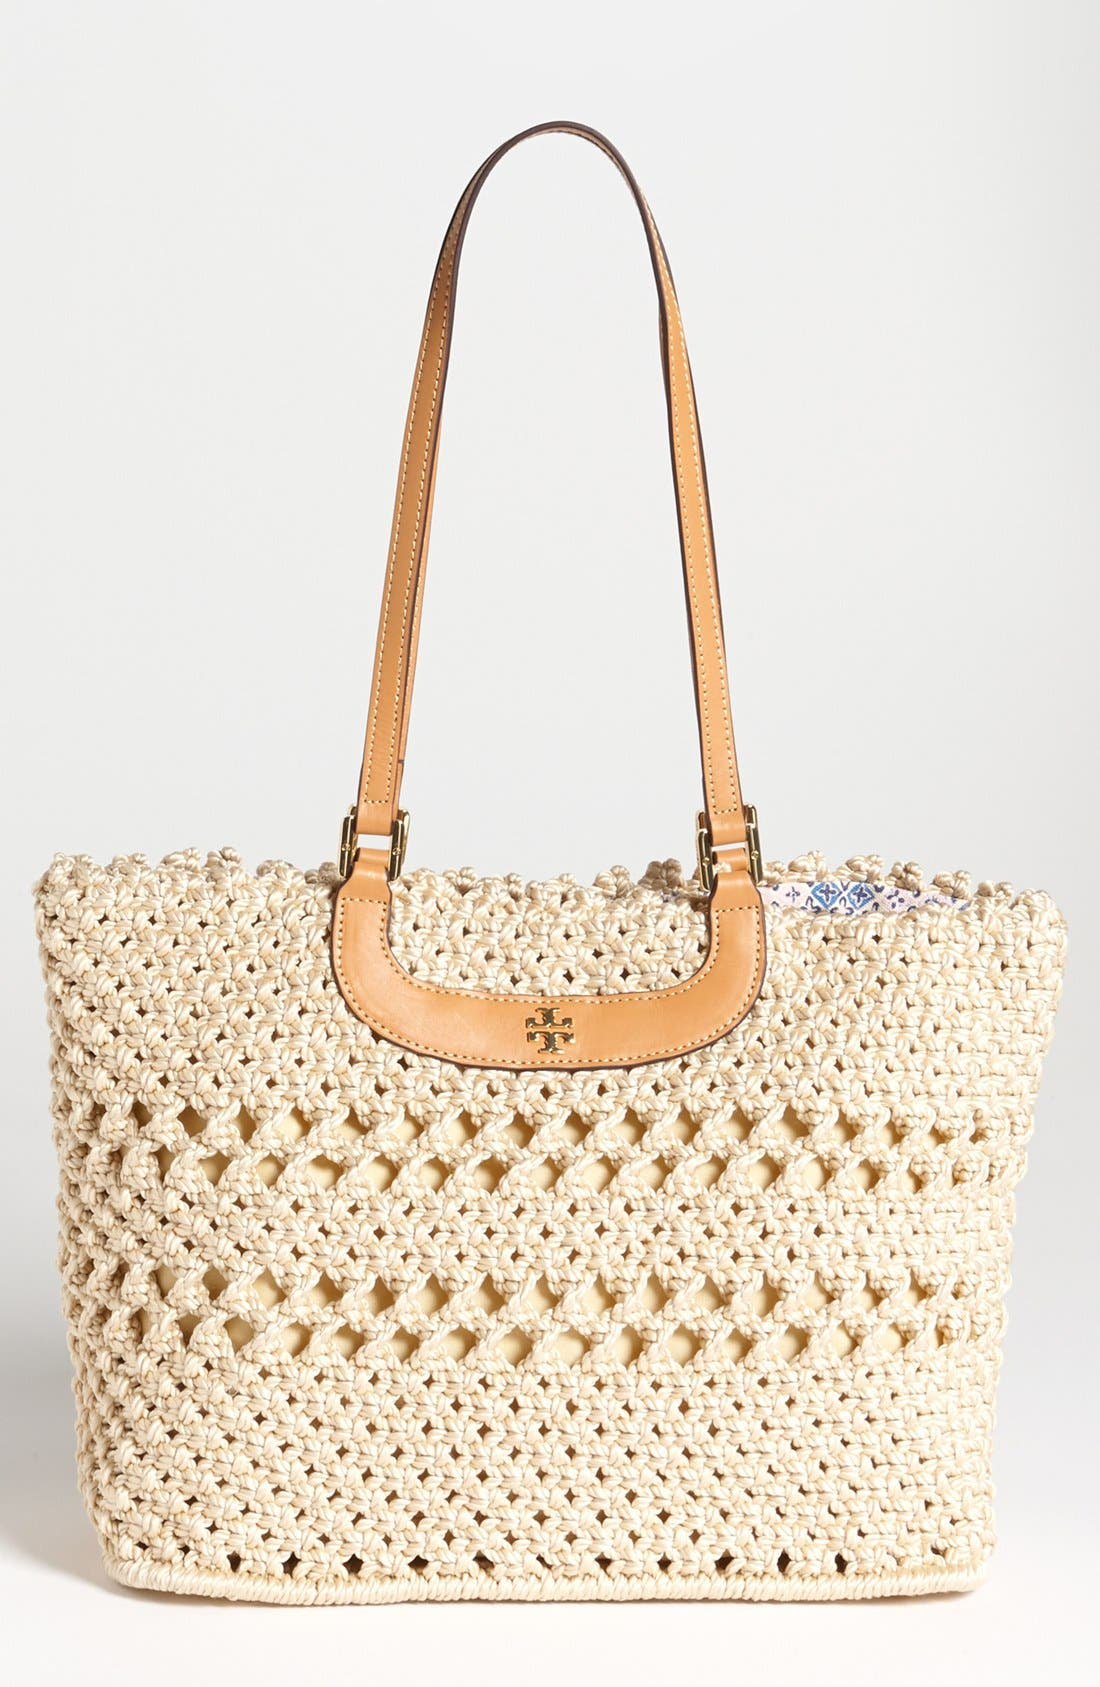 Alternate Image 1 Selected - Tory Burch 'Dawson' Crocheted Tote